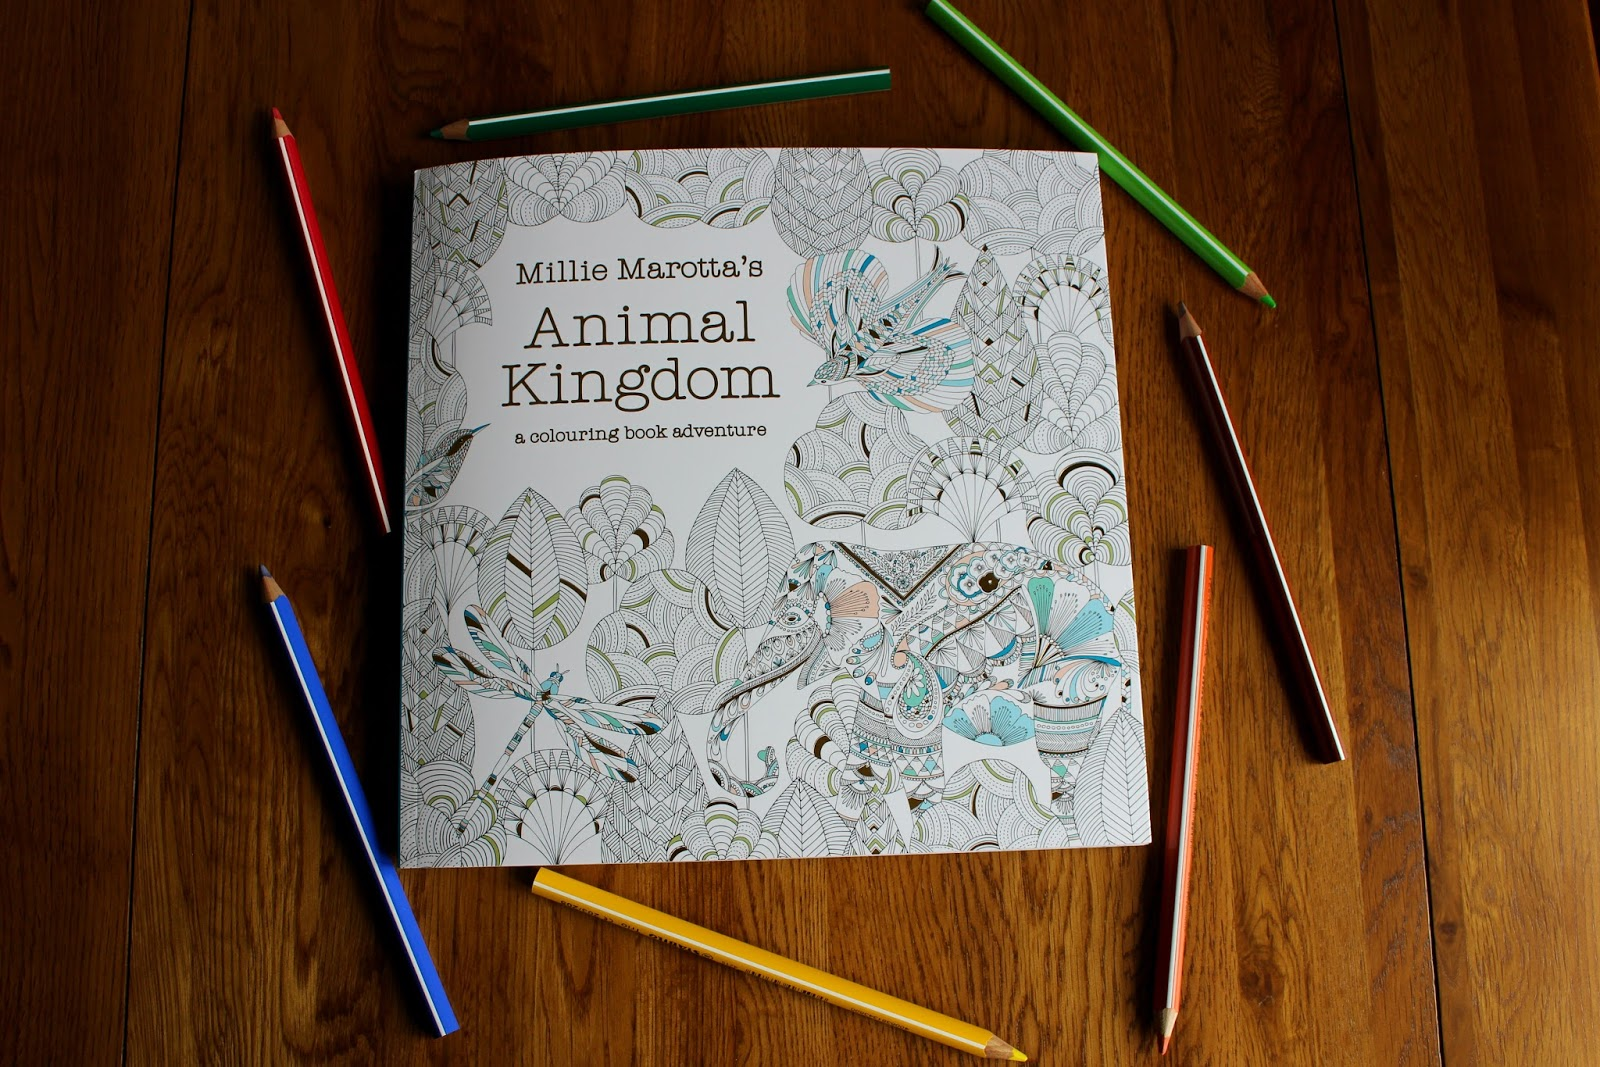 Every School Childs Favourite Past Time Has Finally Entered The Socially Acceptable Realms Of Adulthood With Adult Tailored Colouring Books Becoming An